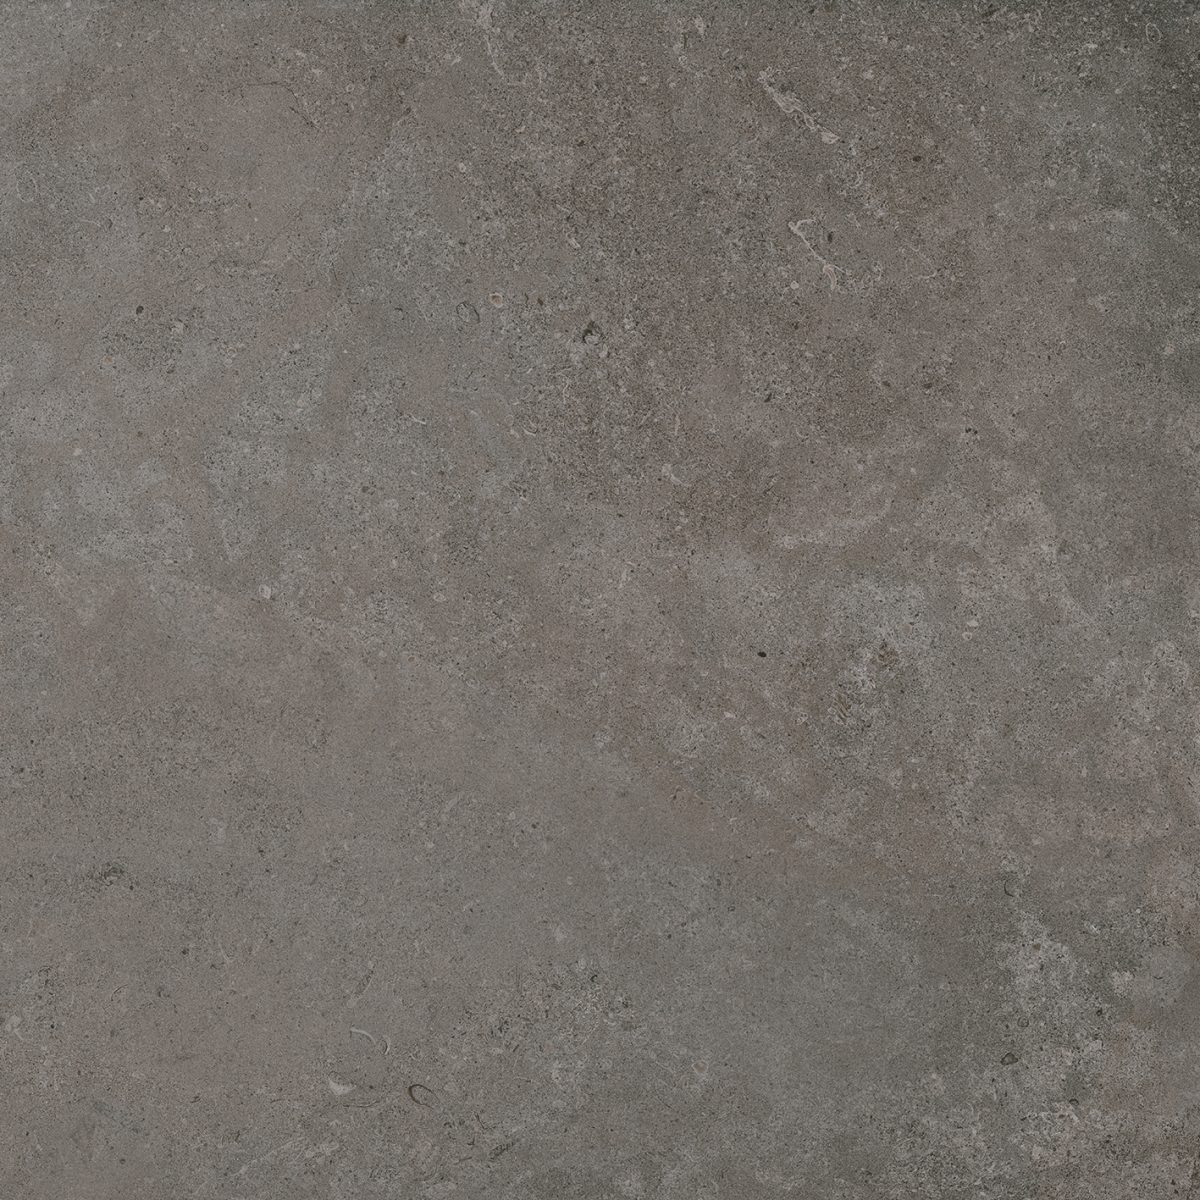 Porcelanosa Berna Grey Anti-Slip 120 x 120 cm